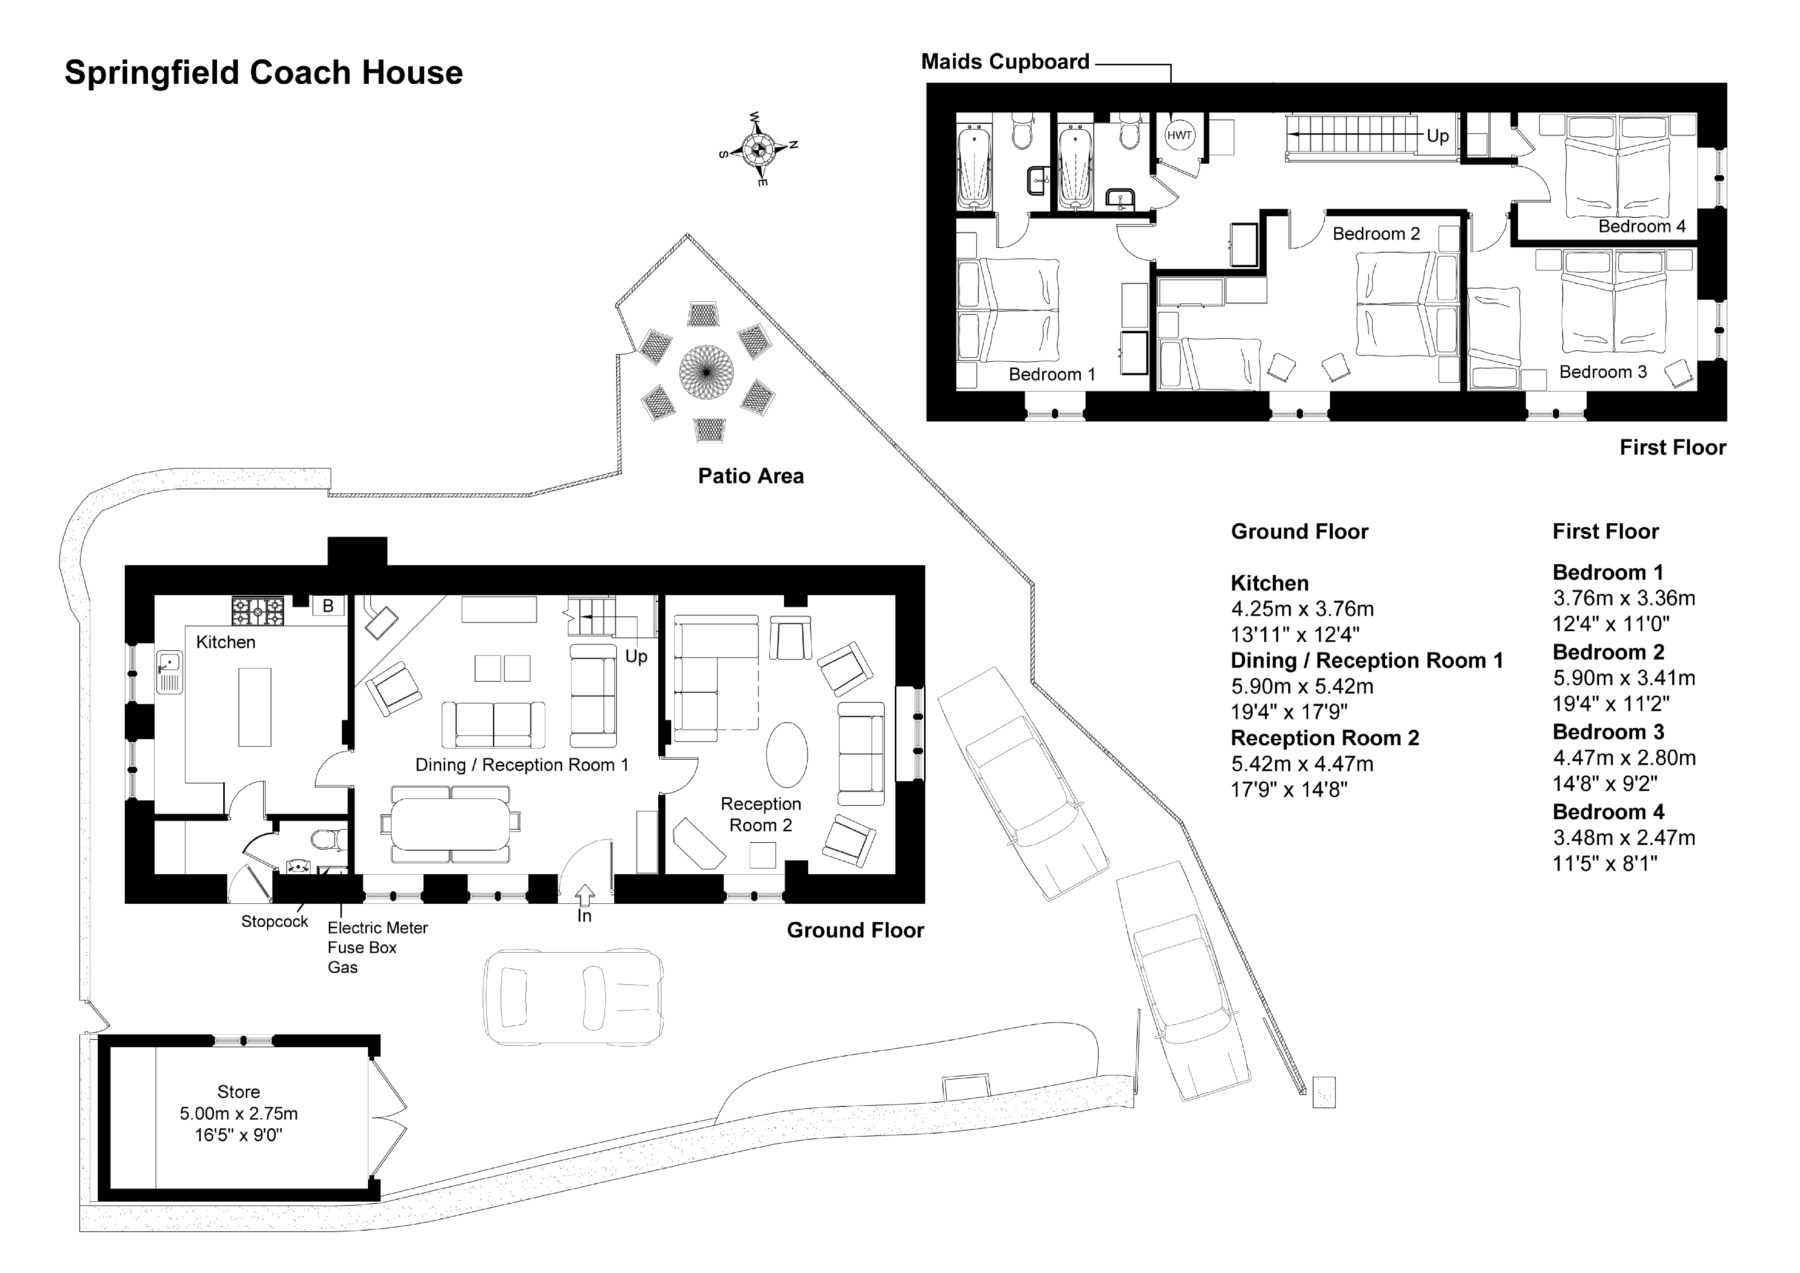 Floor Plan For Springfield Coach House Cotswolds Valleys Accommodation